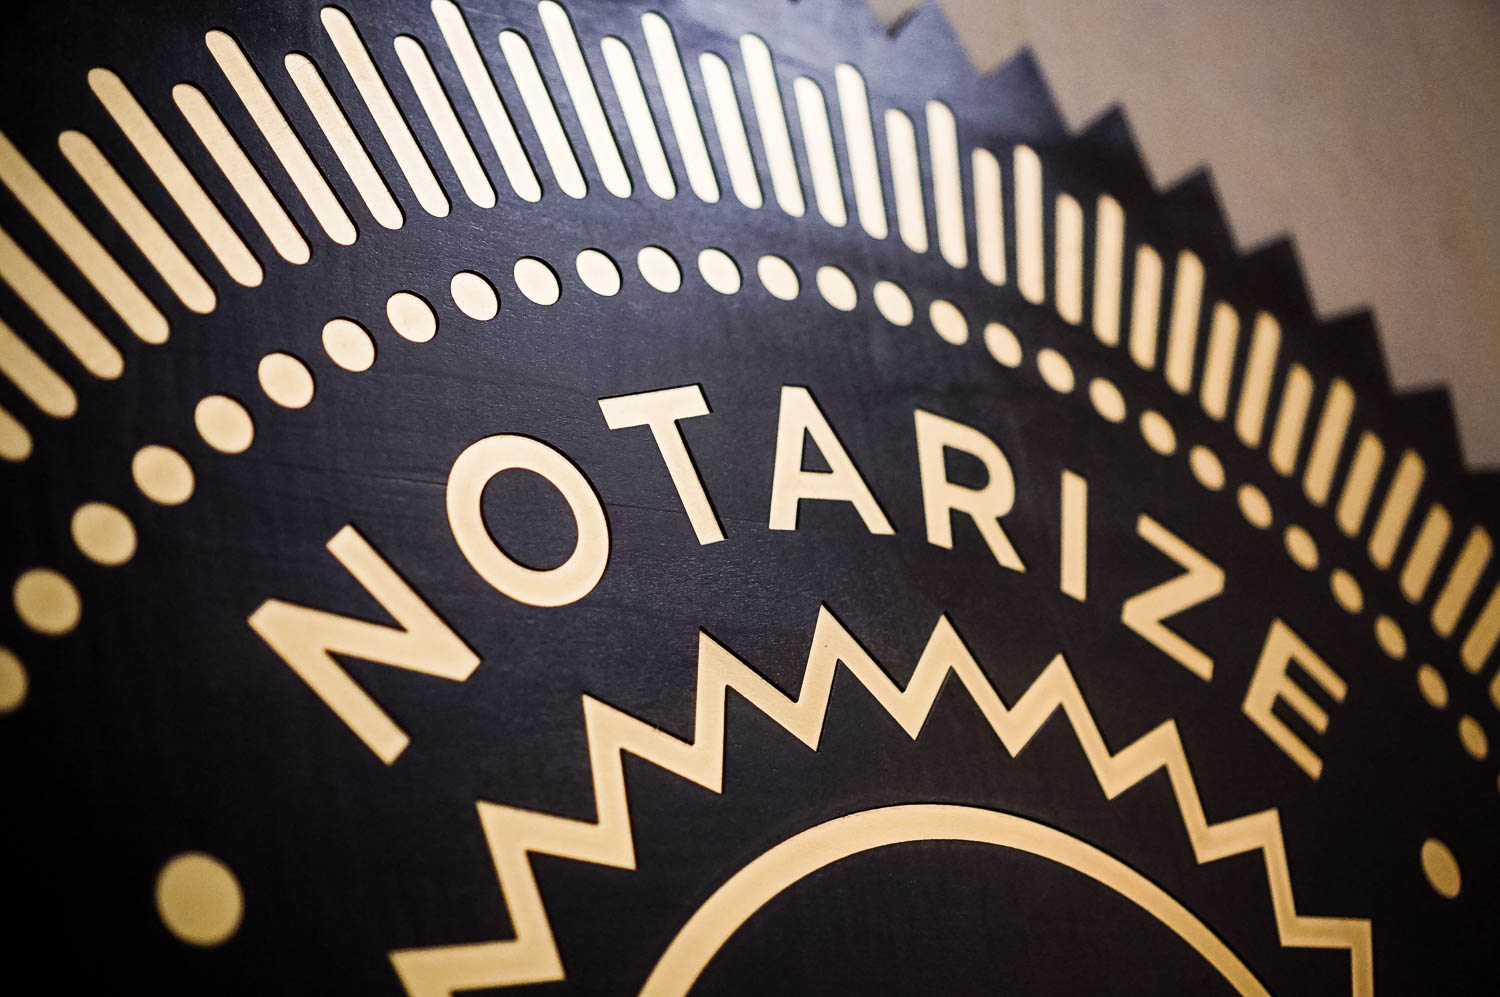 Notarize sign